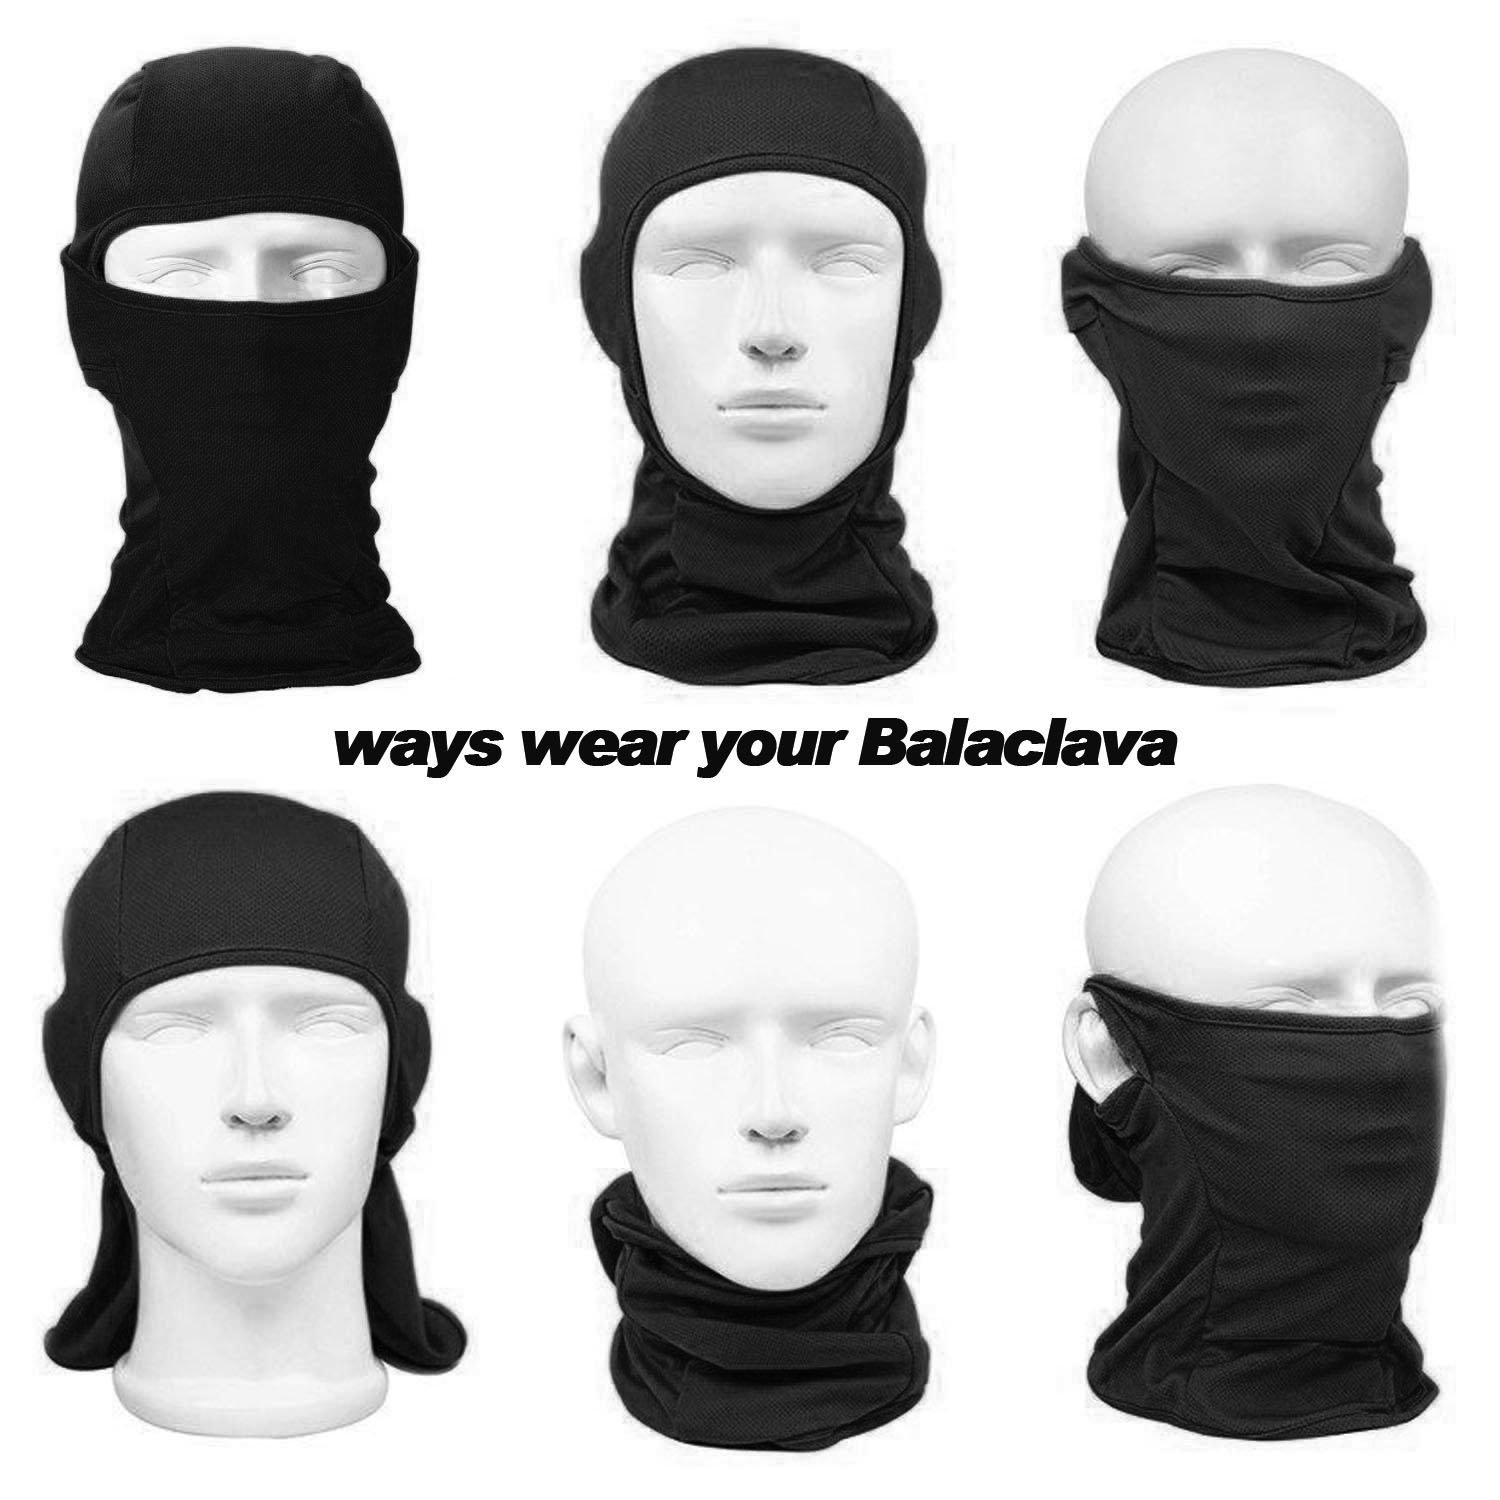 Cycling Windproof Mask Adjustable Face Head Warmer for Skiing Balaclava Motorcycle Outdoor Sports Guangzhou Qinglonglin Apparel CO .LTD BE-bl